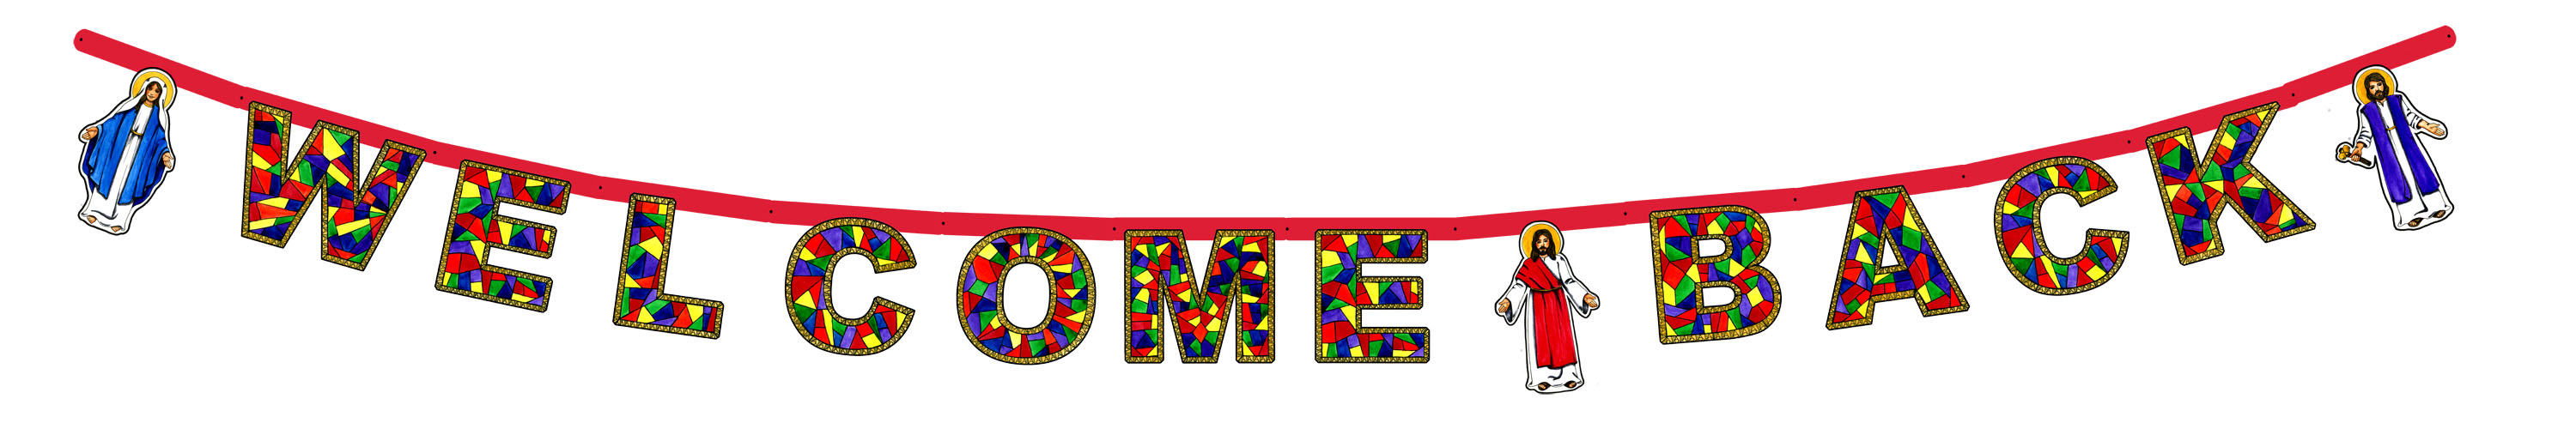 3000x500 You Re Welcome Clip Art Clipart 3